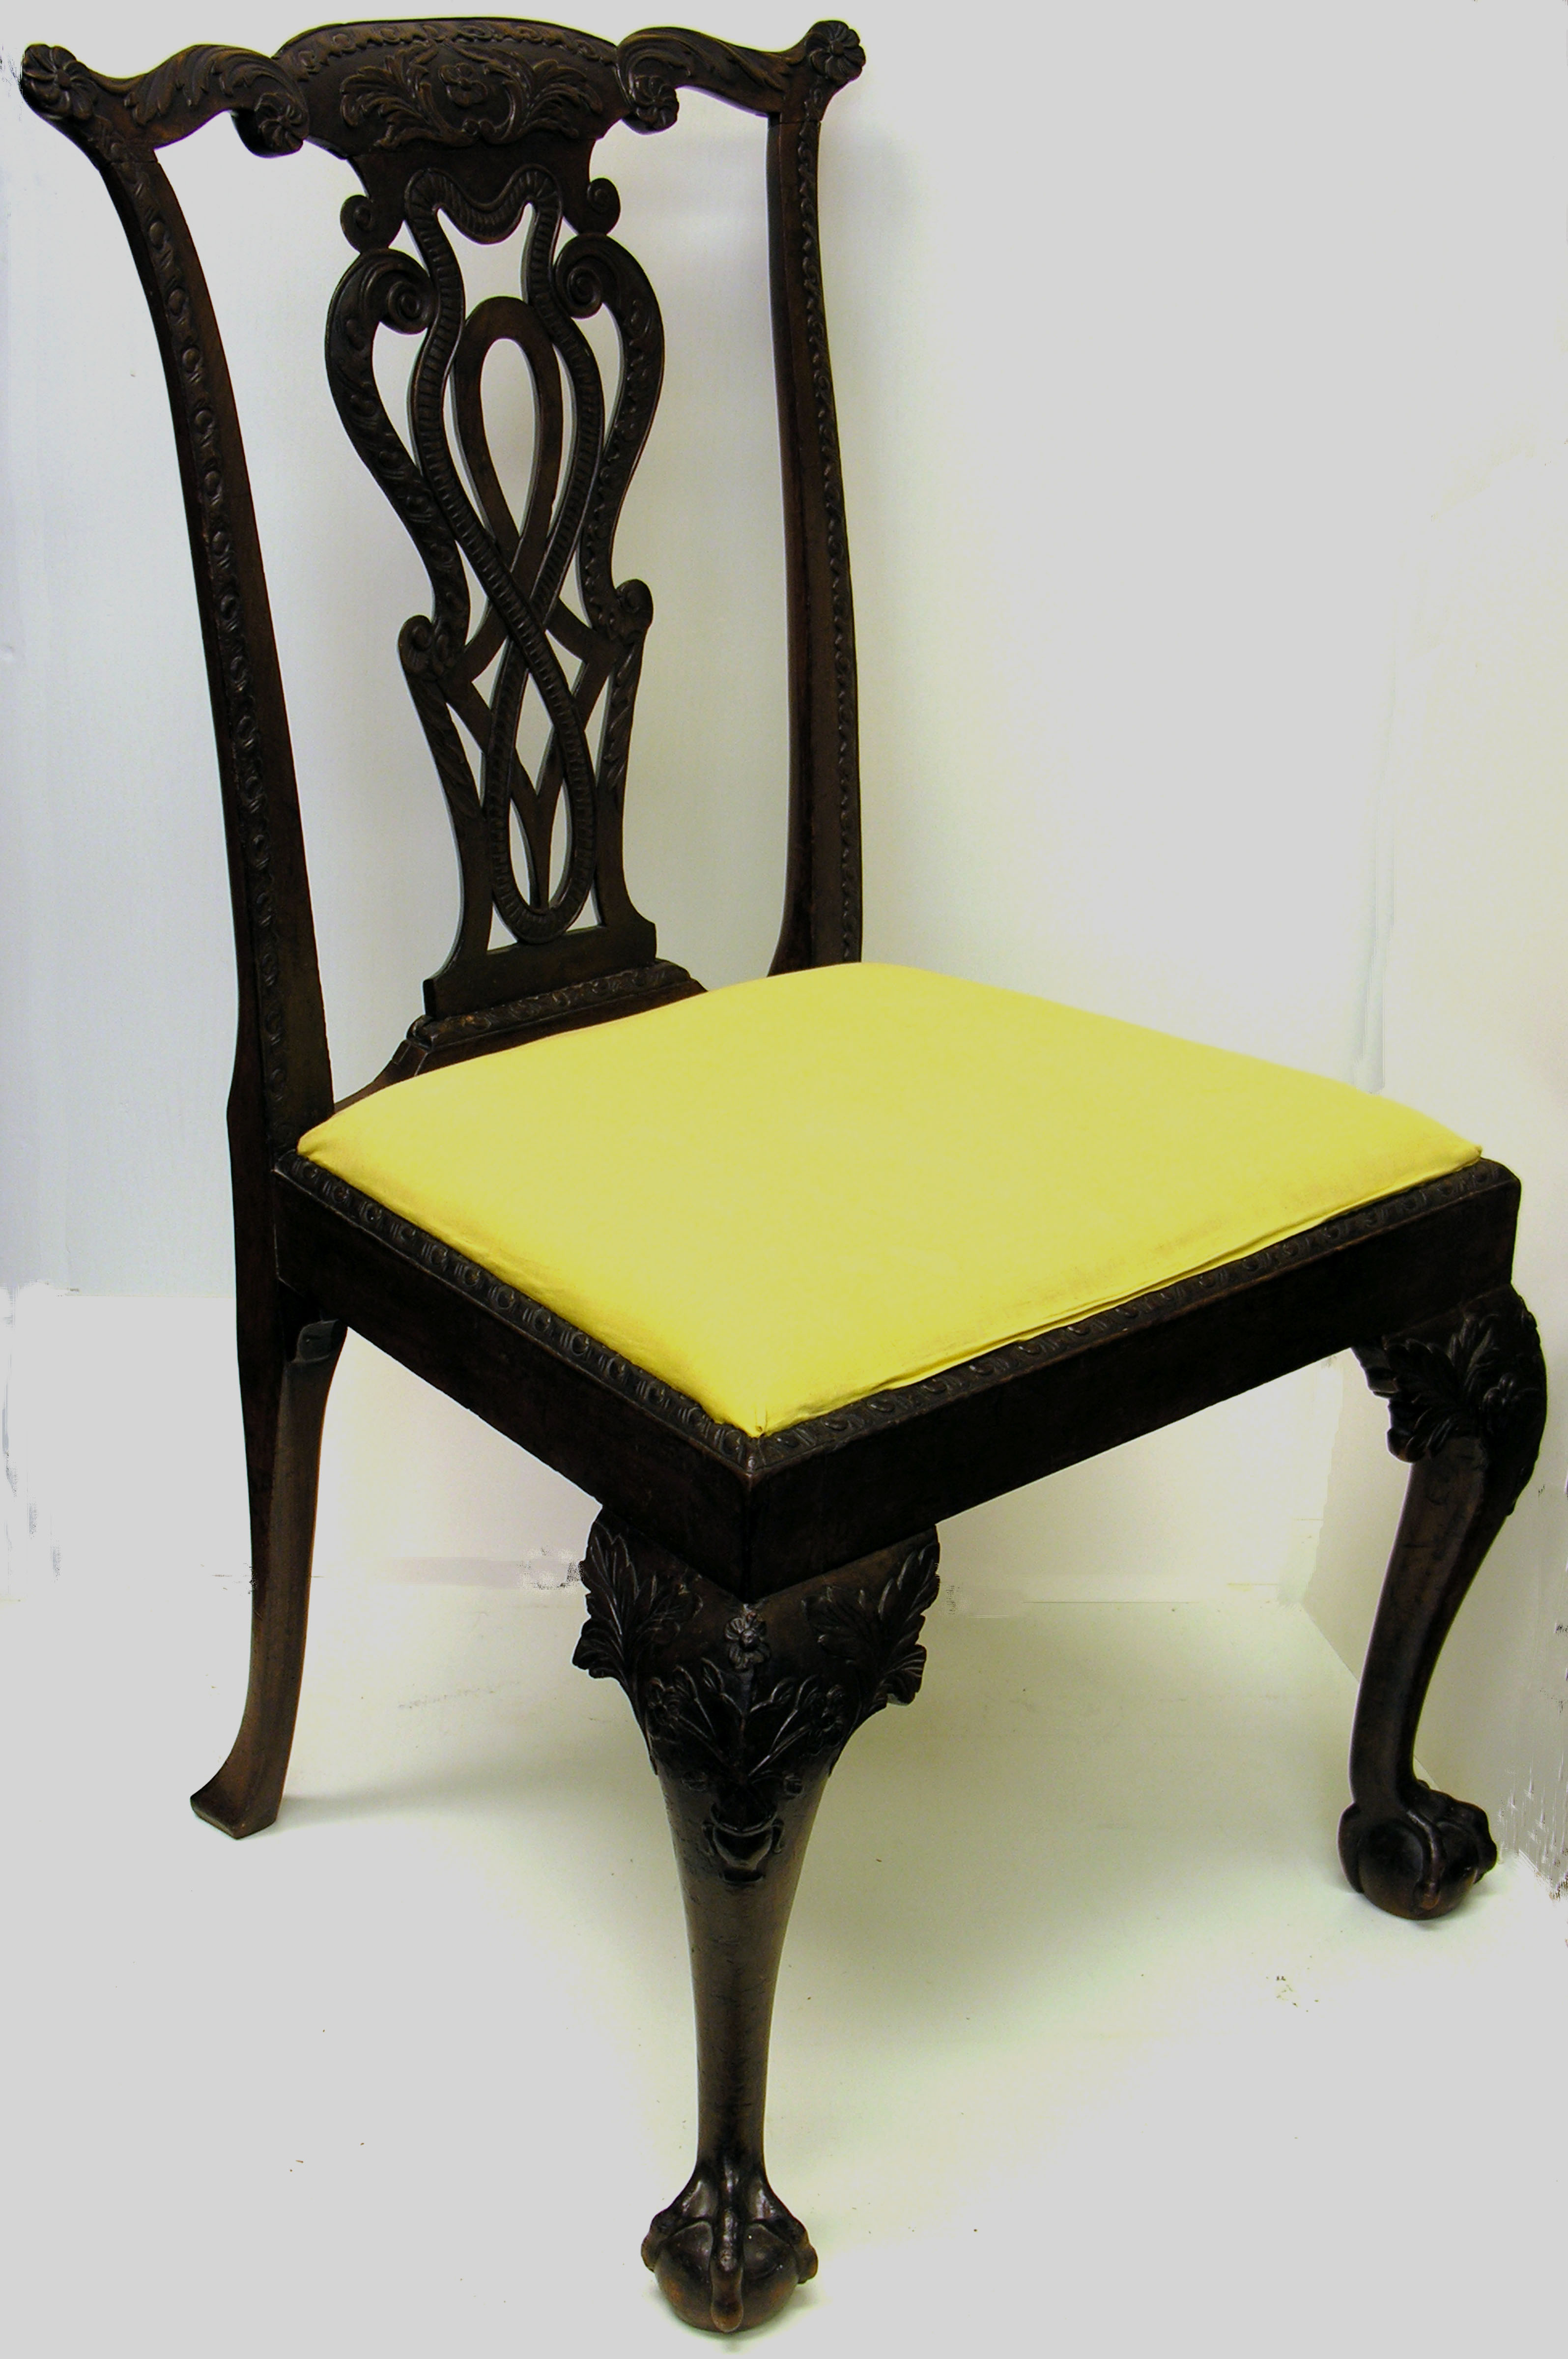 Carved chair, mahogany, Chippendale